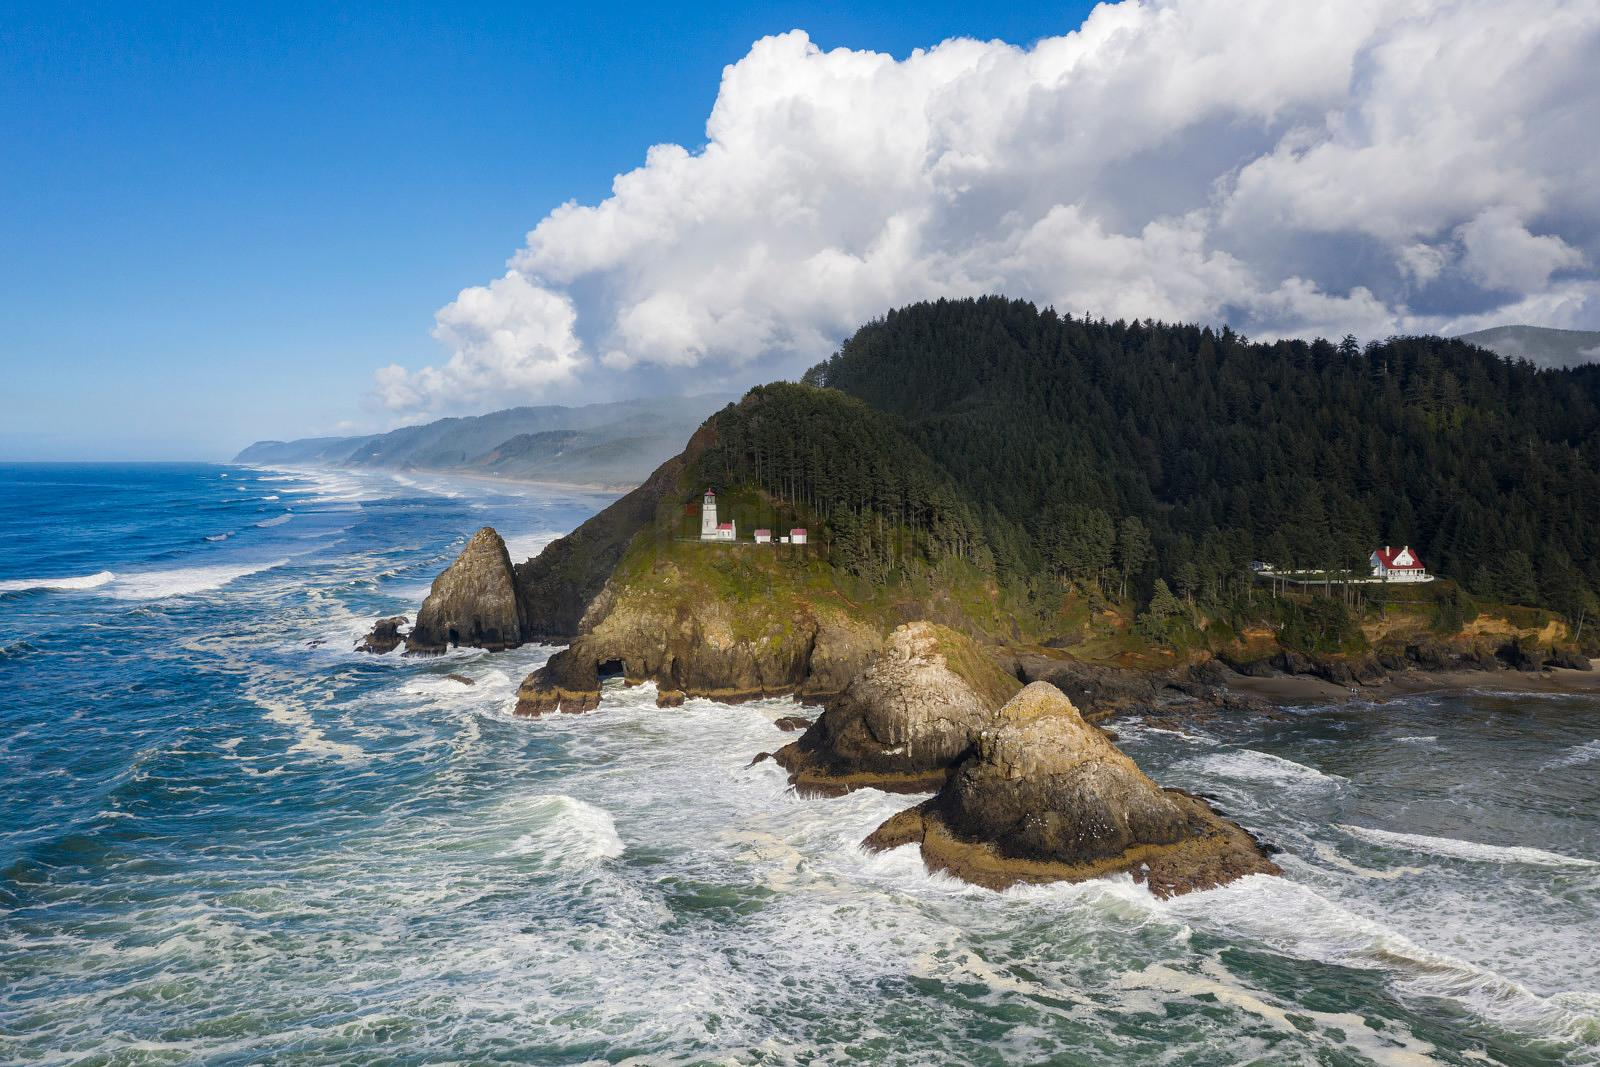 Aerial View of the Heceta Head Lighthouse